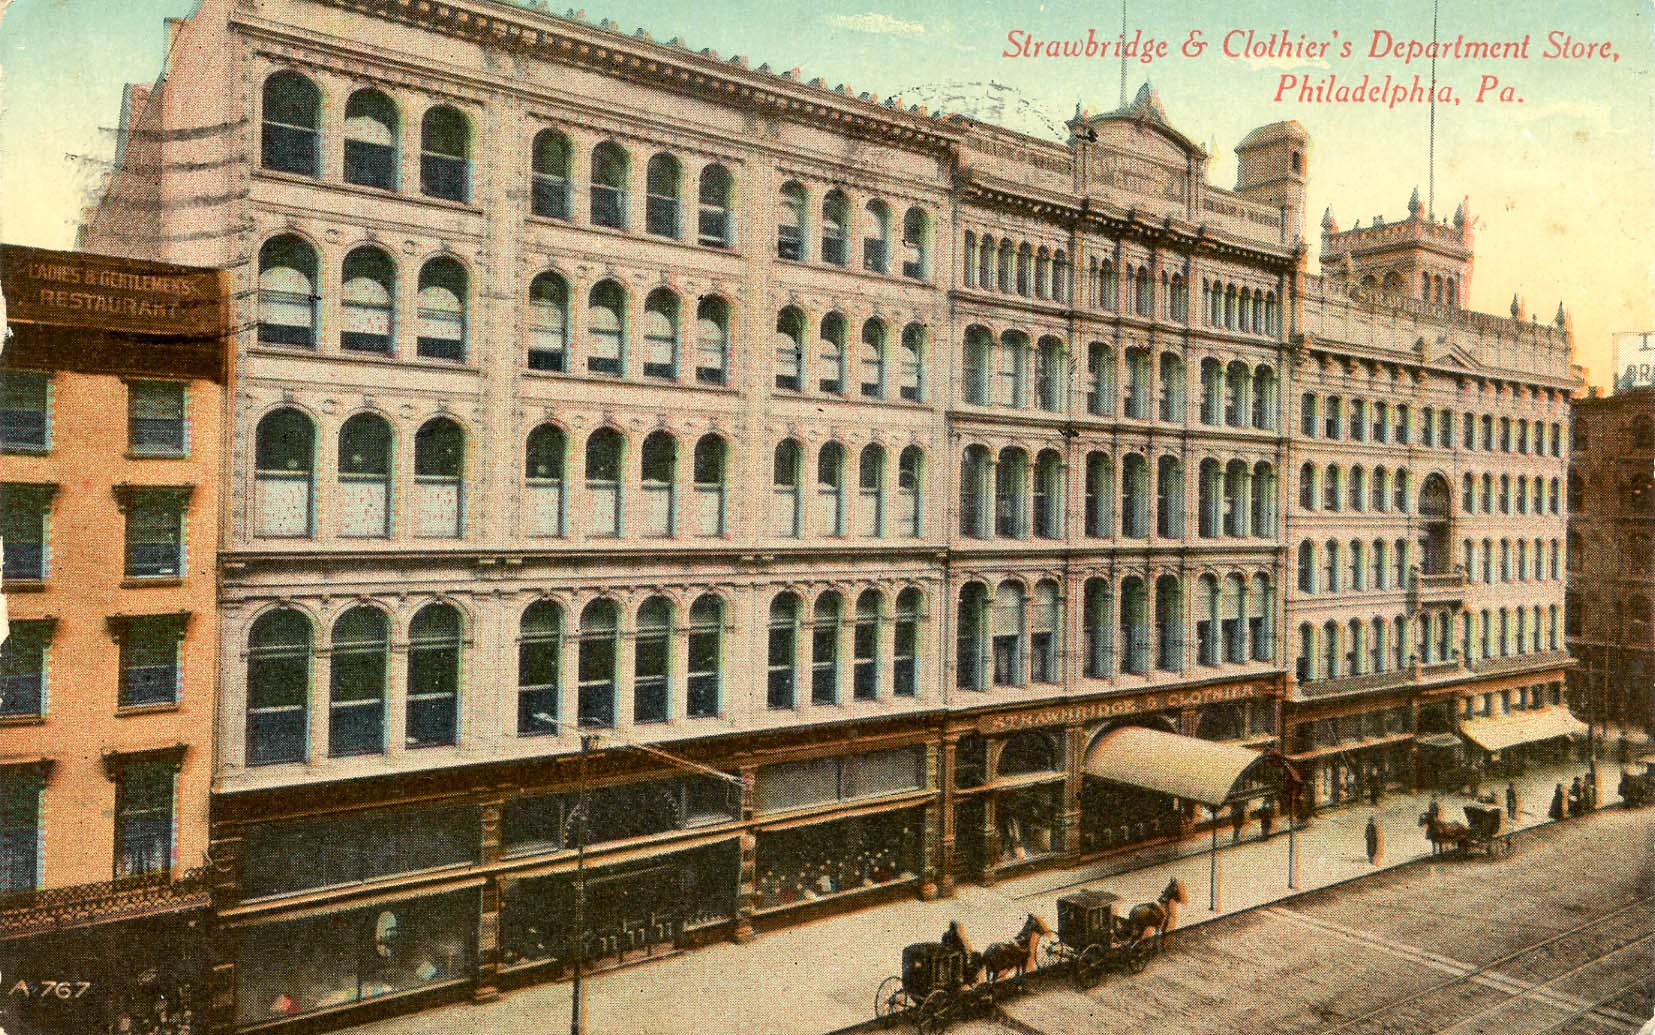 This 1911 postcard shows Strawbridge & Clothier's five story building fronting Market St. Col. 274, 06x40.1 Downs Collection, Winterthur Library